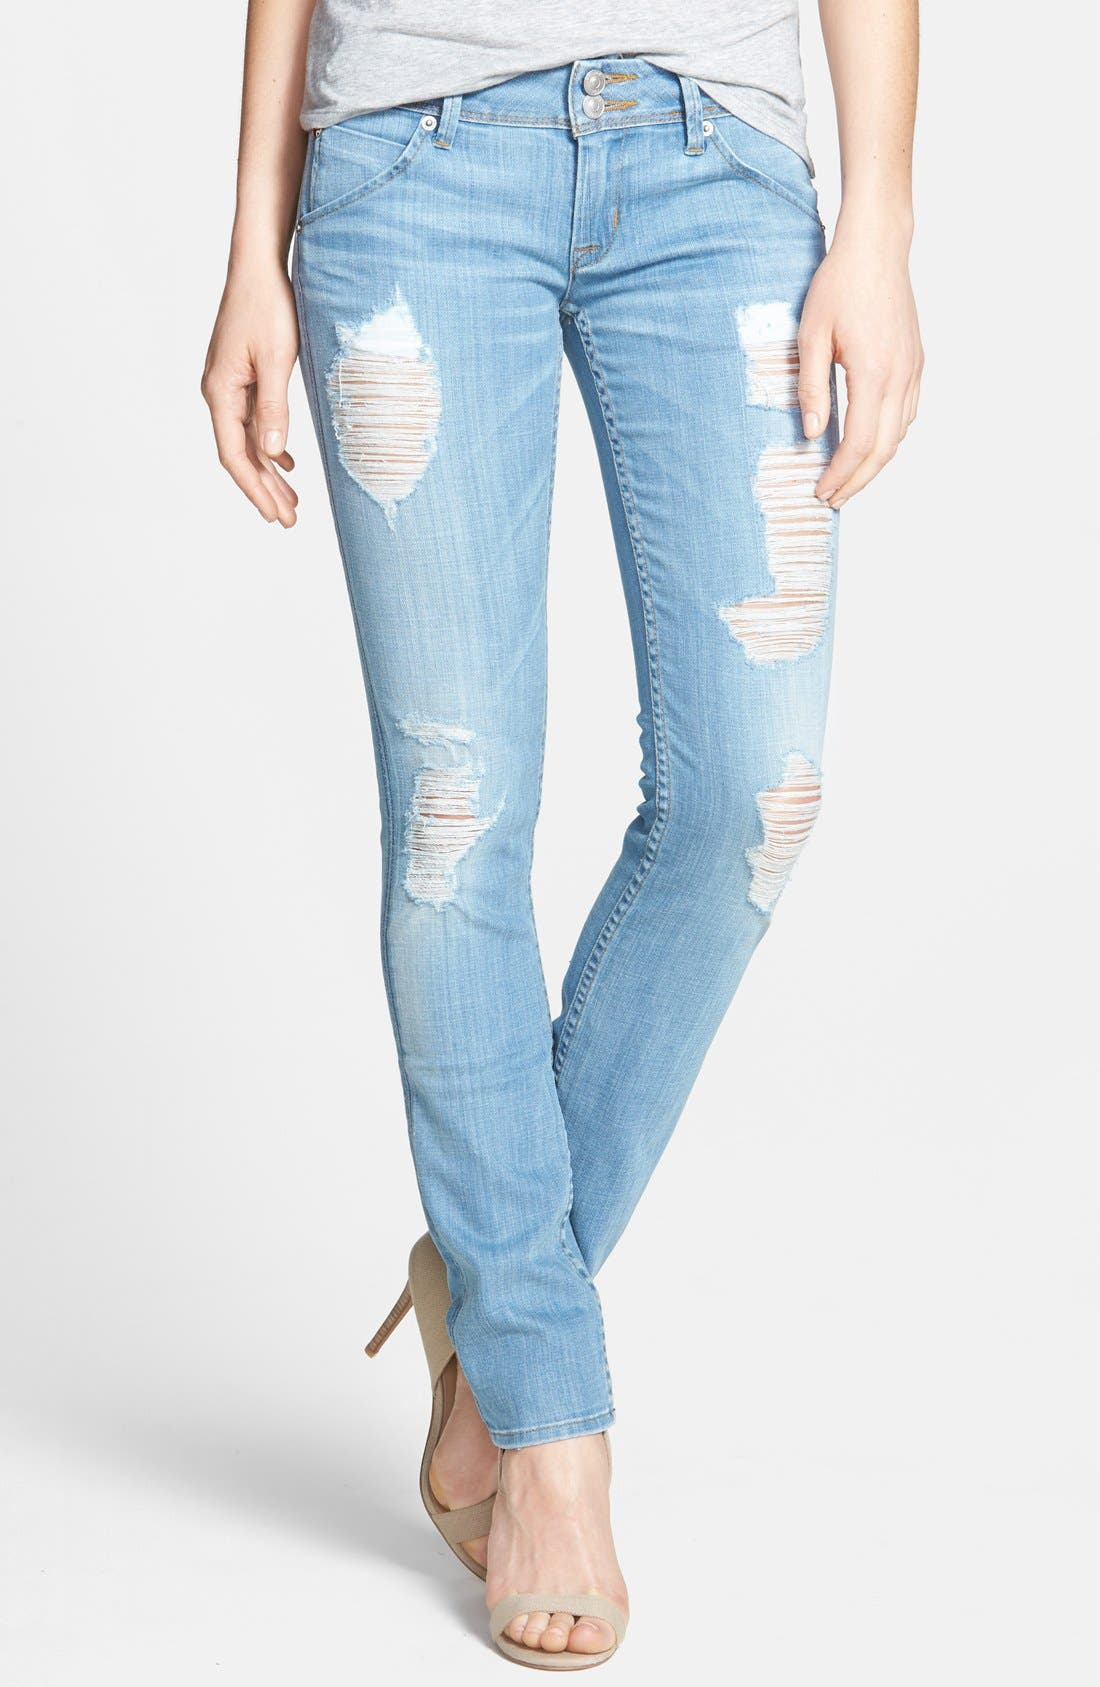 Main Image - Hudson Jeans 'Collin' Skinny Jeans (Soul Search)